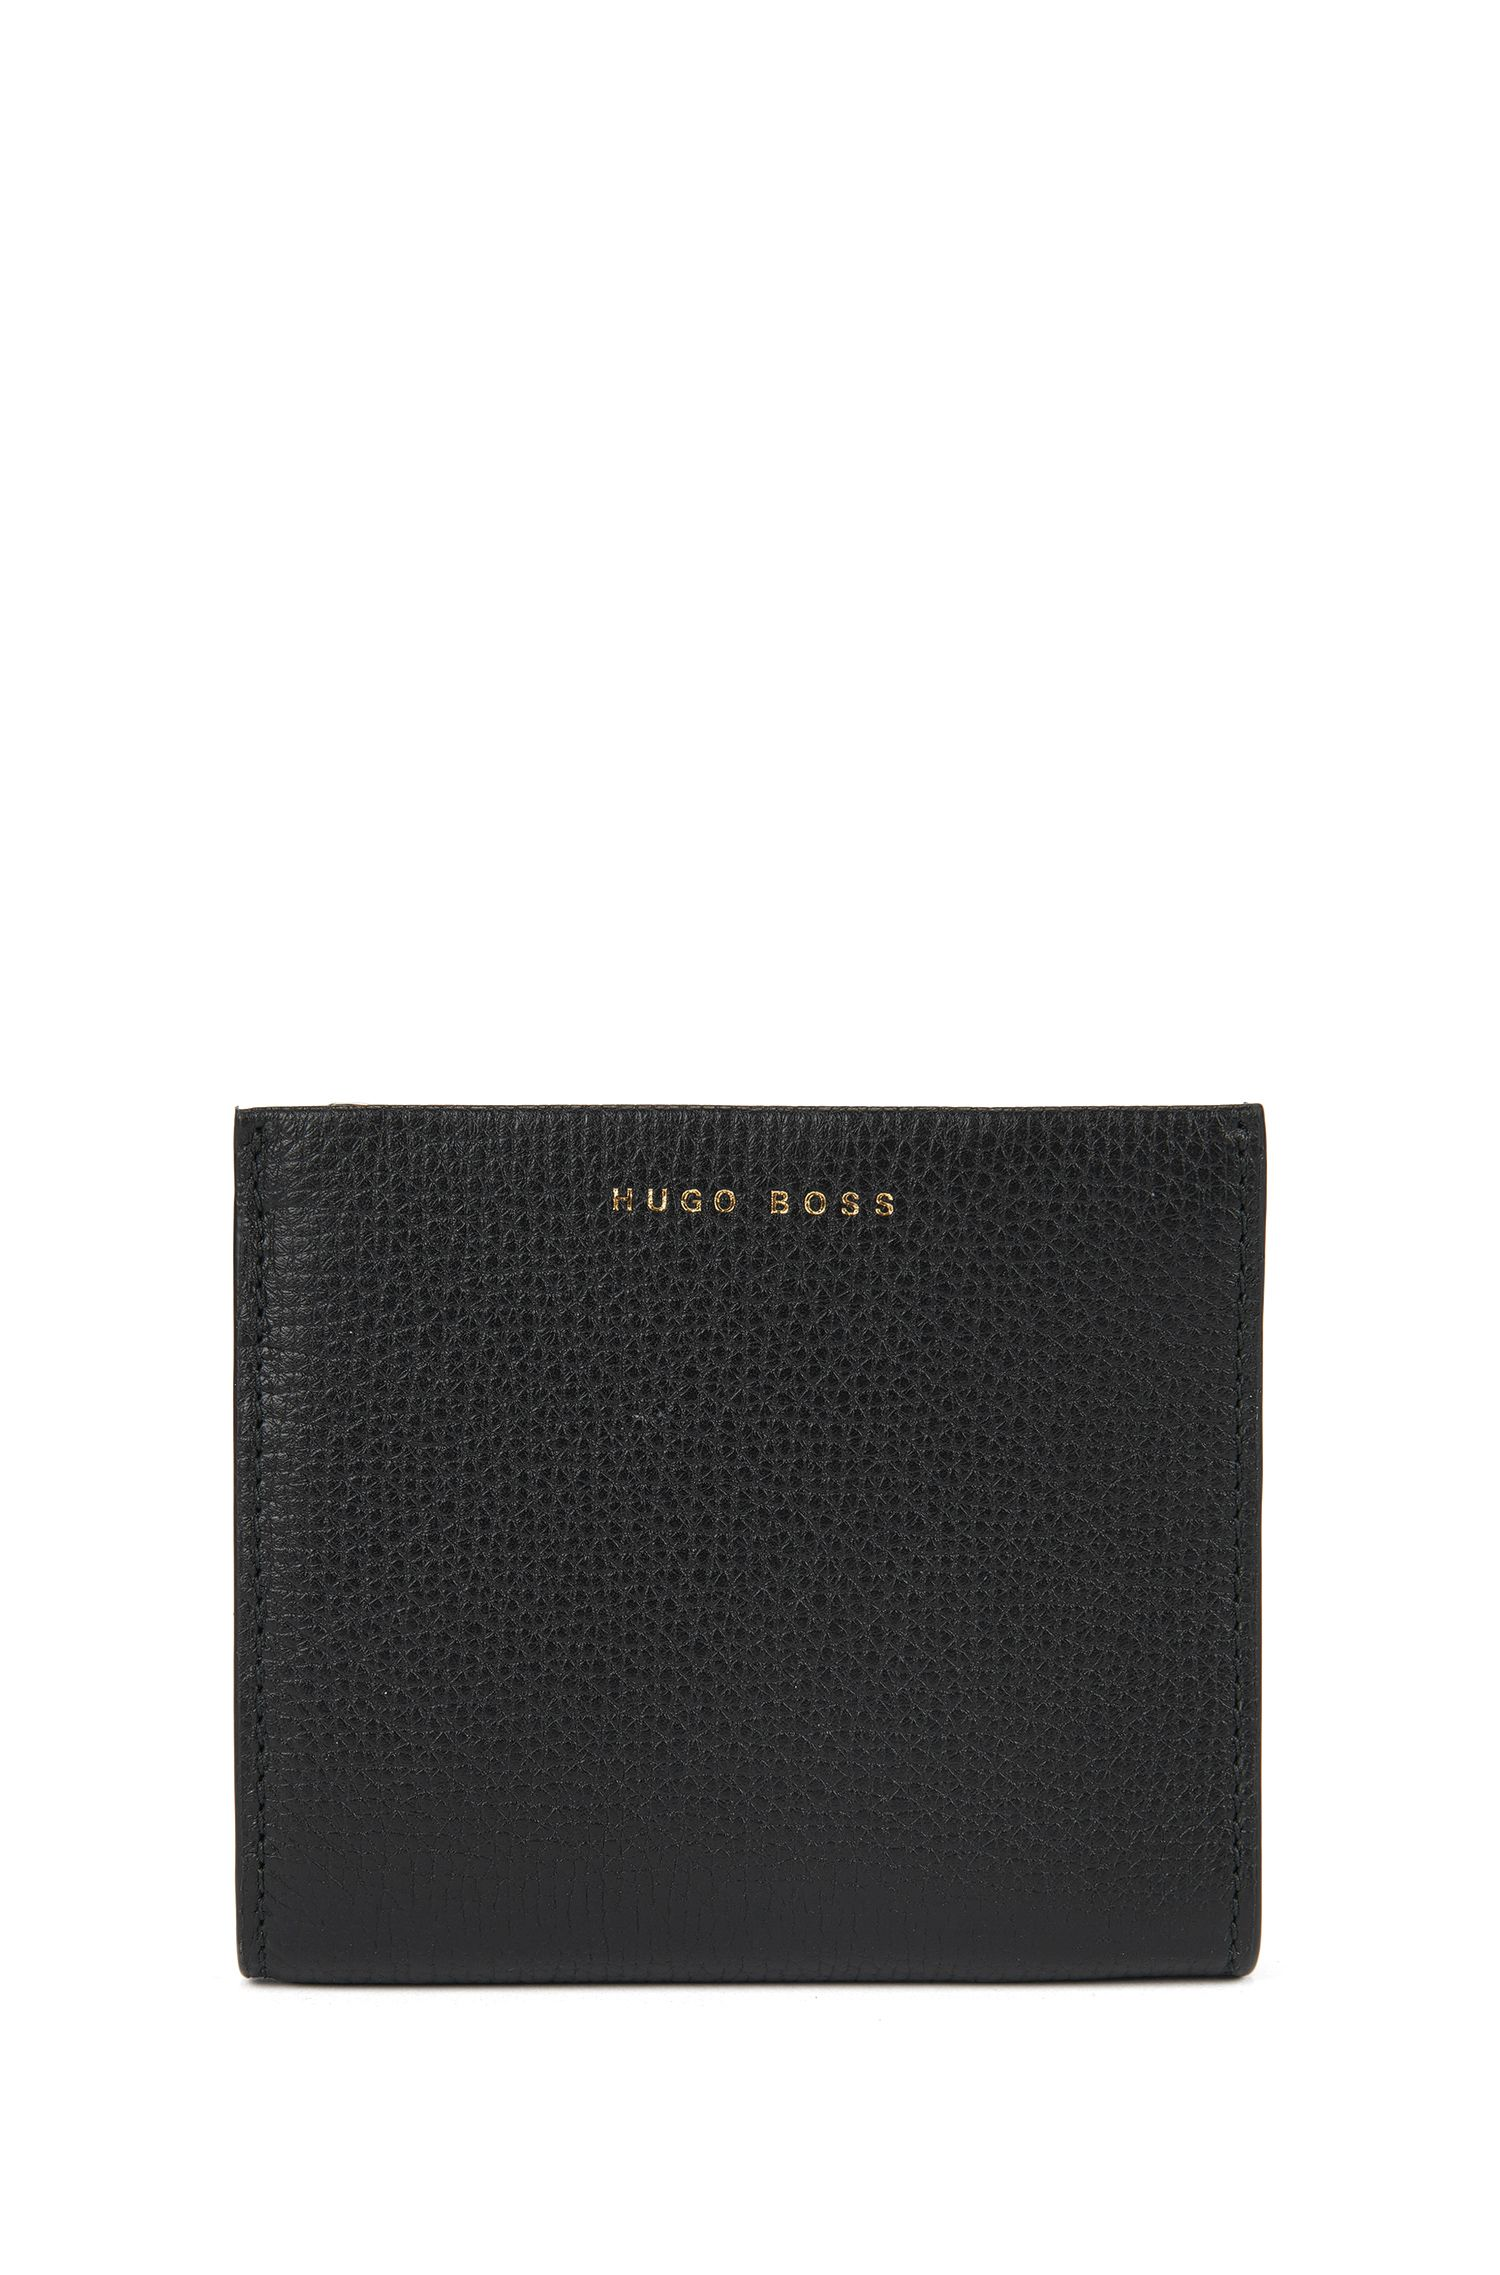 Zipped Leather Bifold Wallet | Taylor Small Wallet